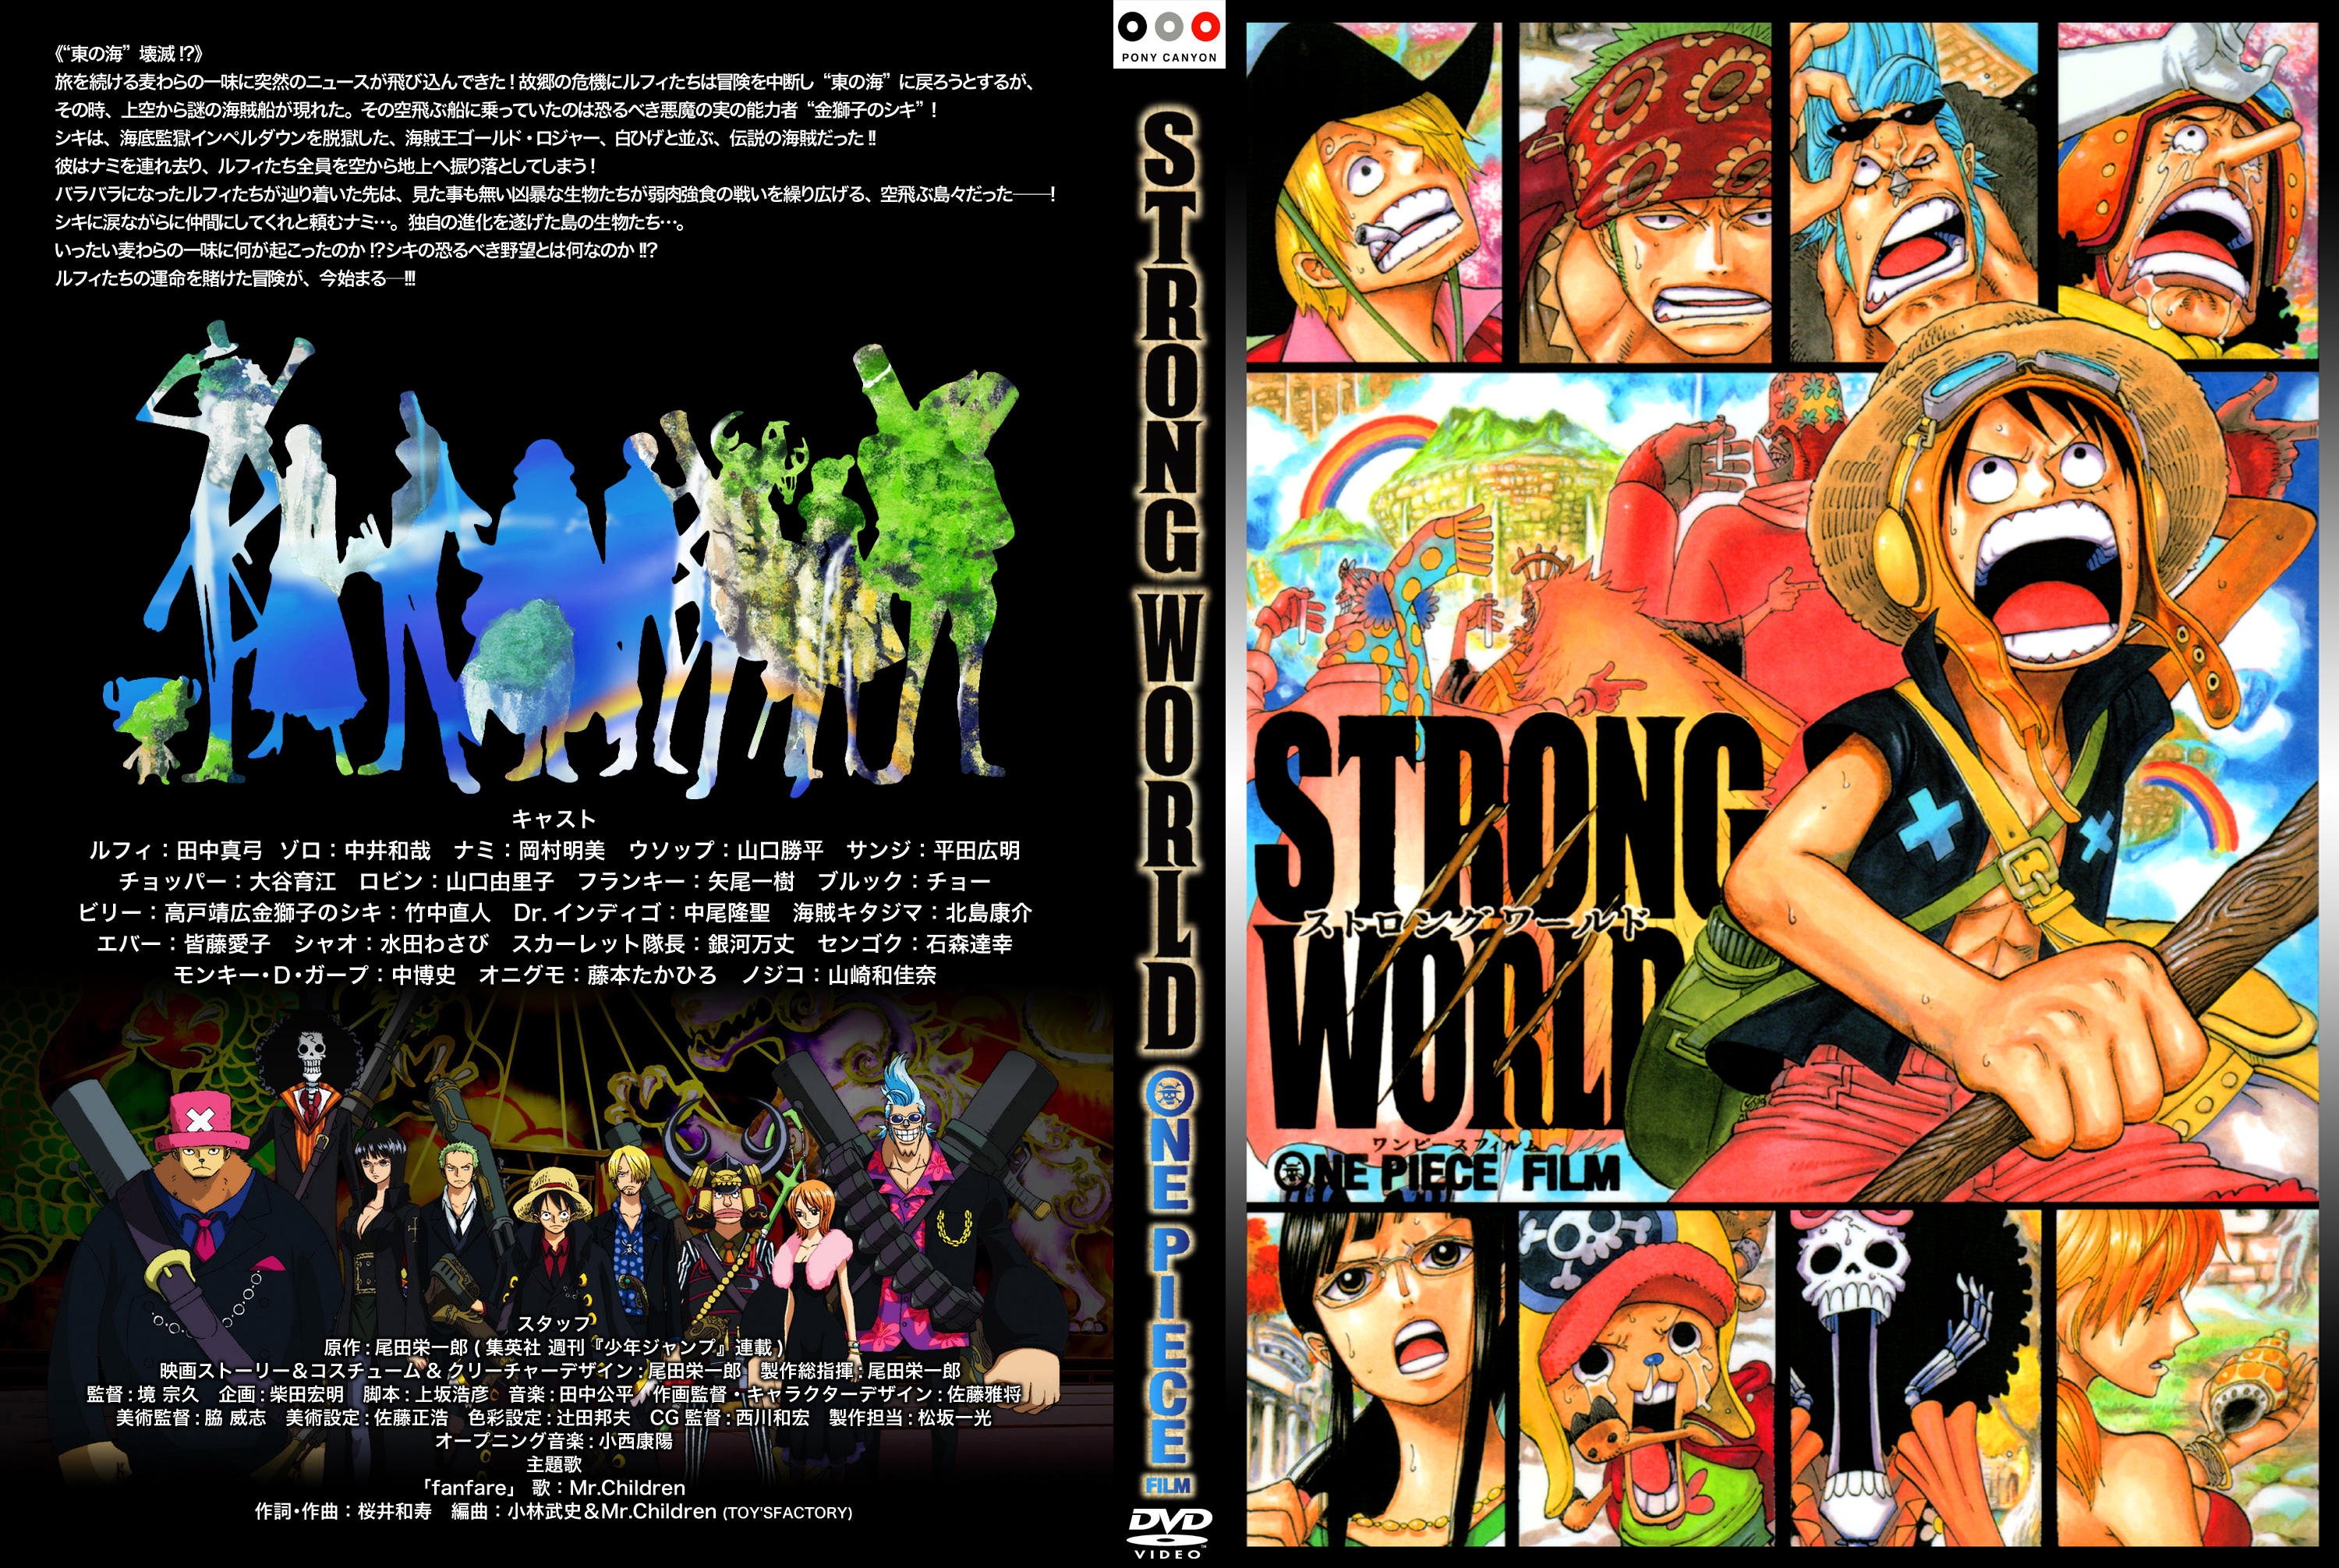 ワンピース劇場版「ONE PIECE -FILM- STRONG WORLD」